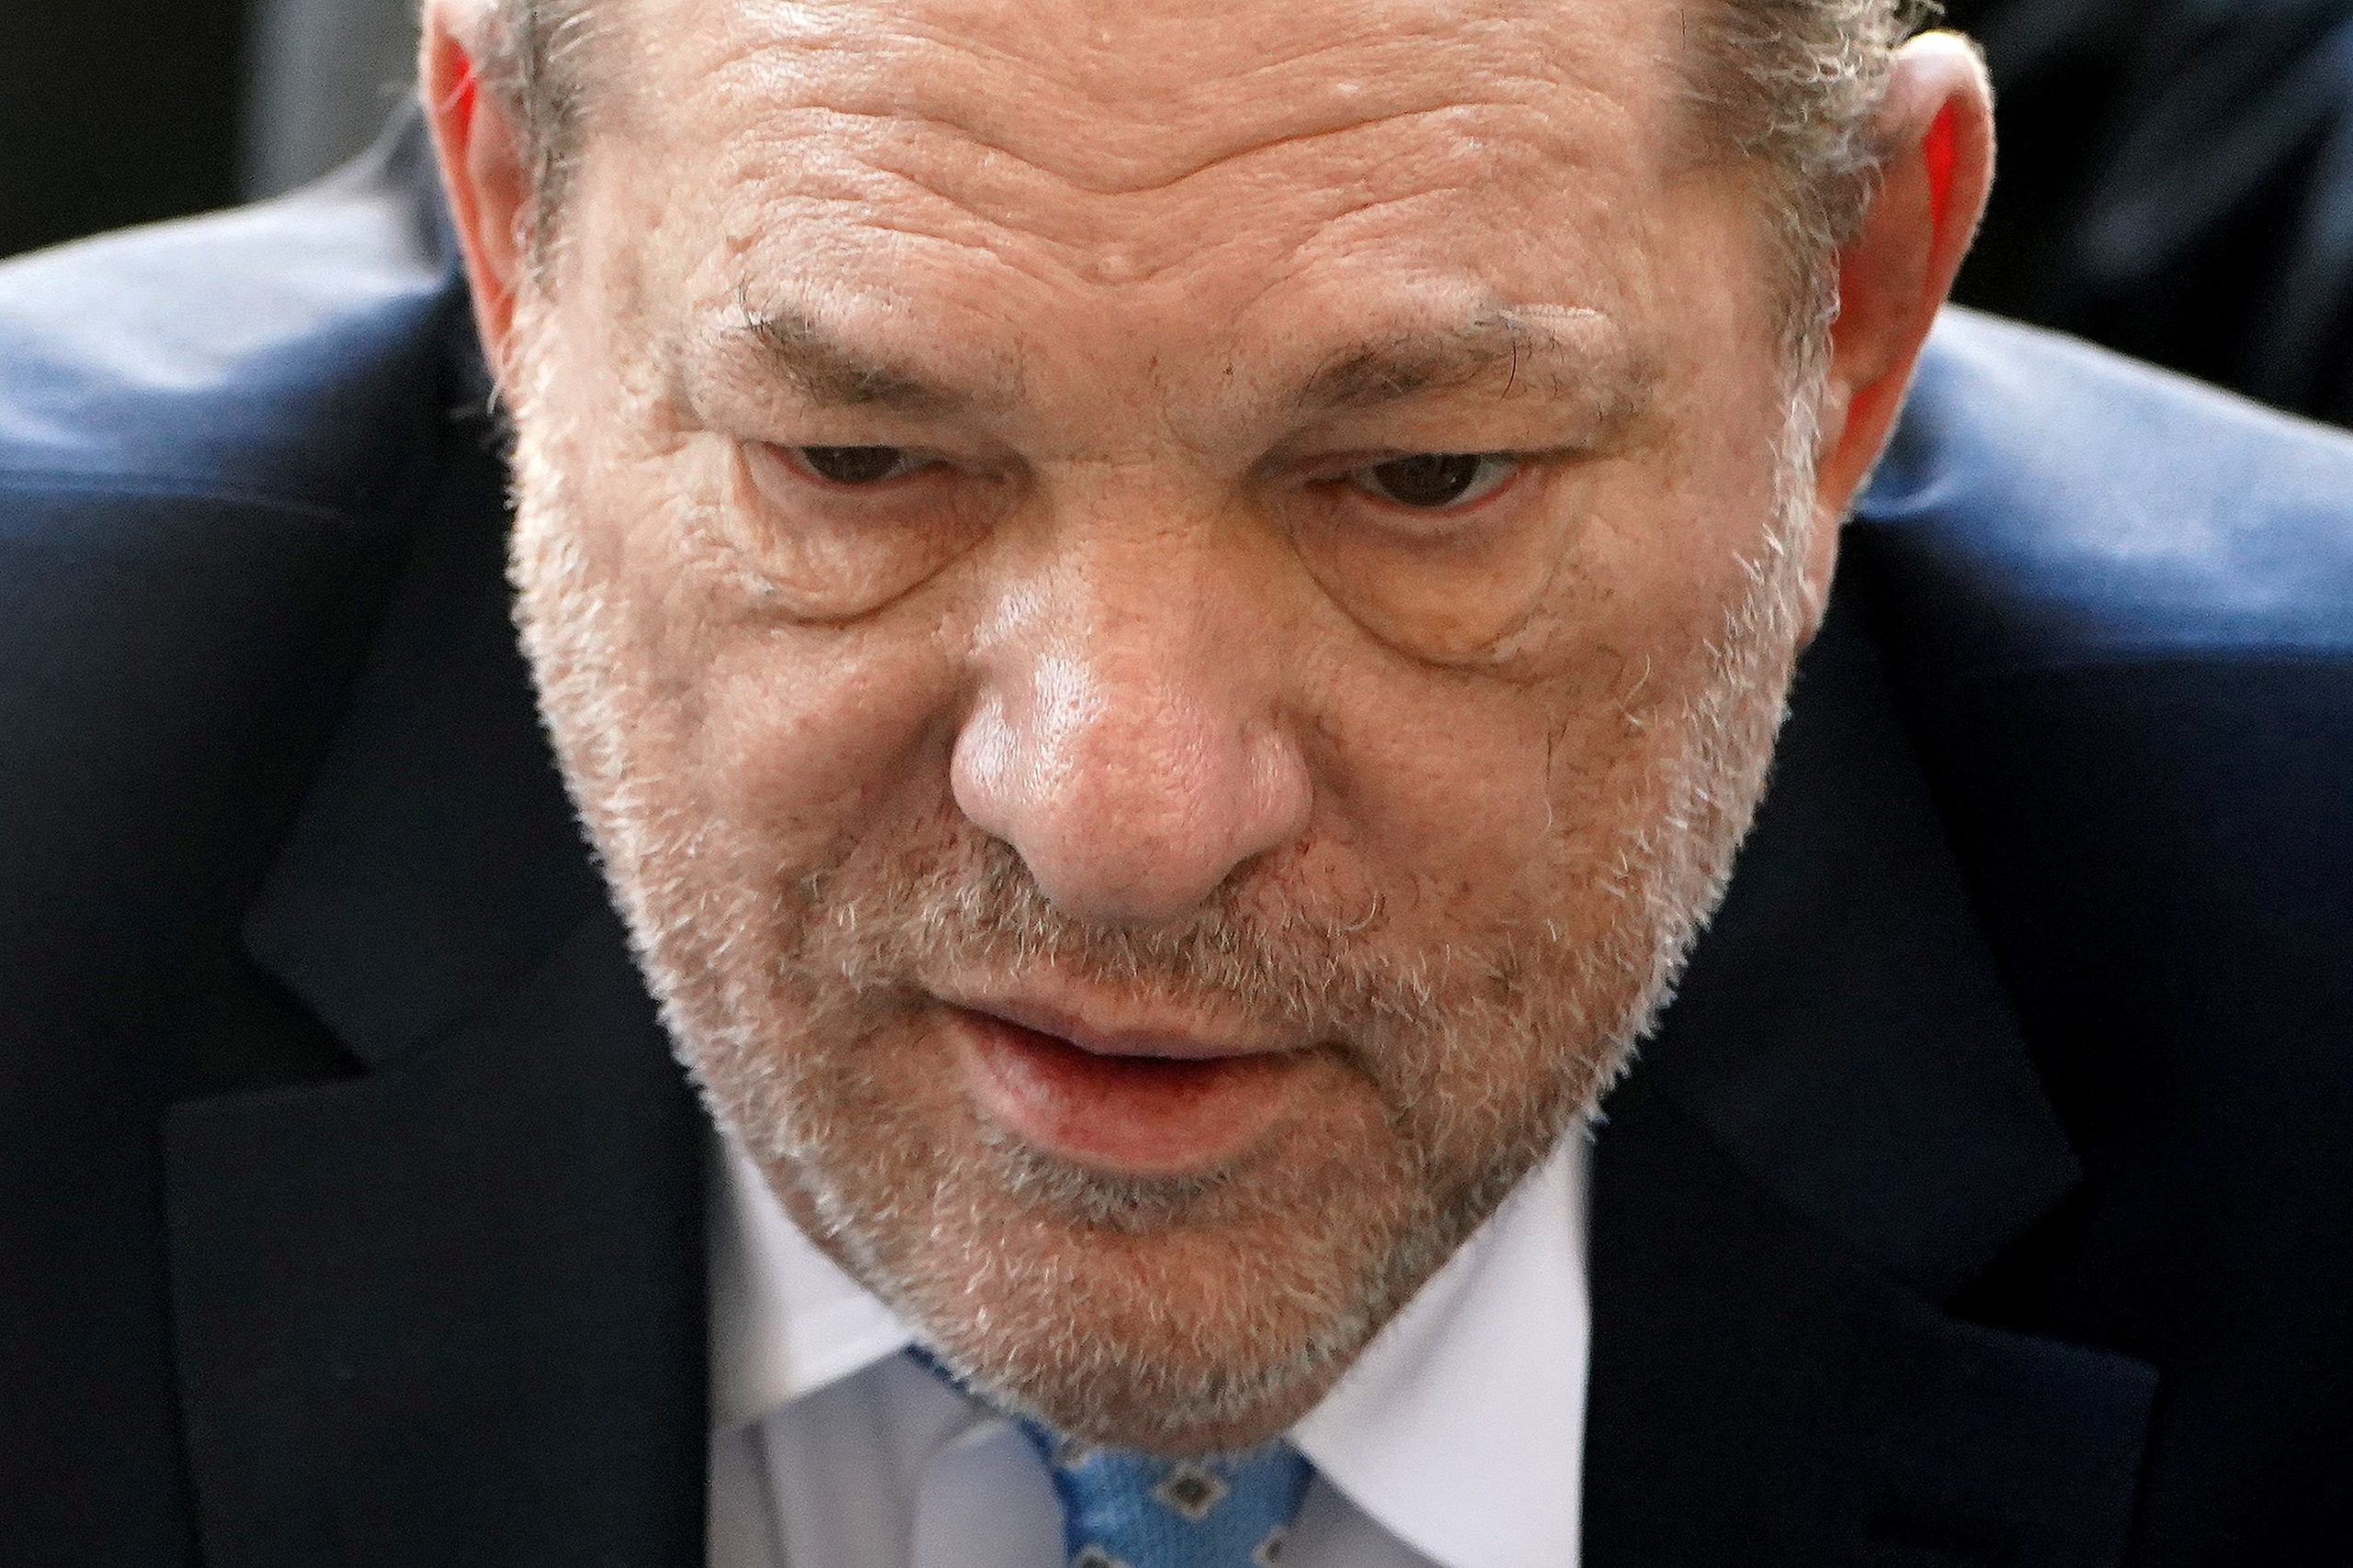 Harvey Weinstein tests positive for COVID-19 in prison, union official says